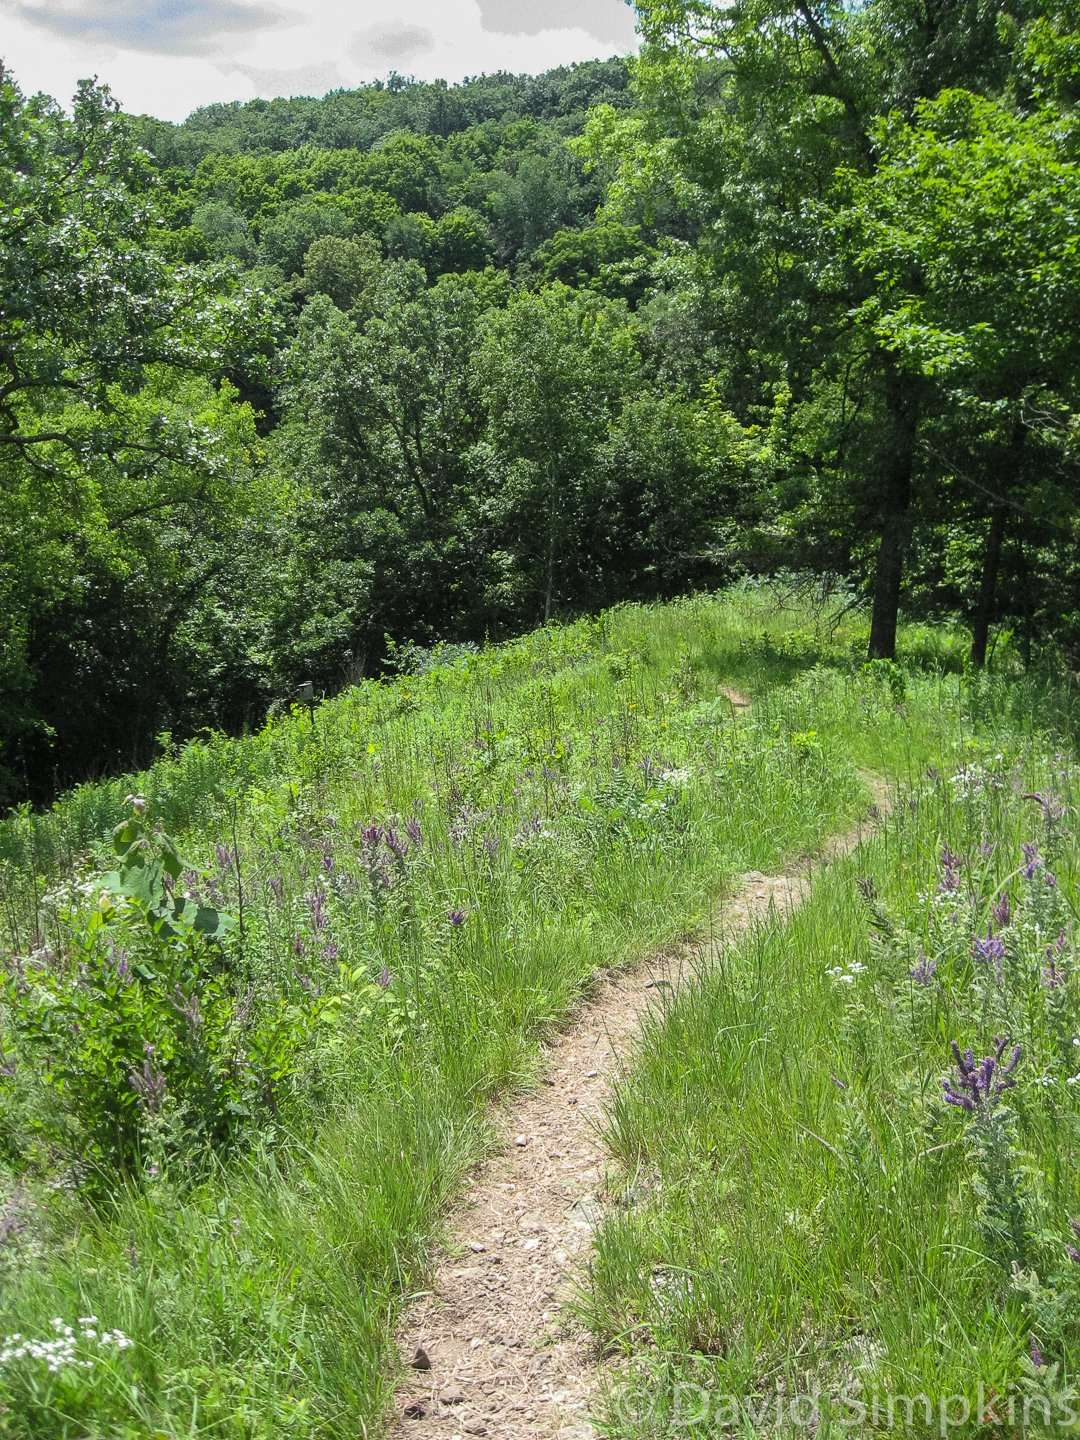 The bluffs at Beaver Creek Valley are up to 250 feet high